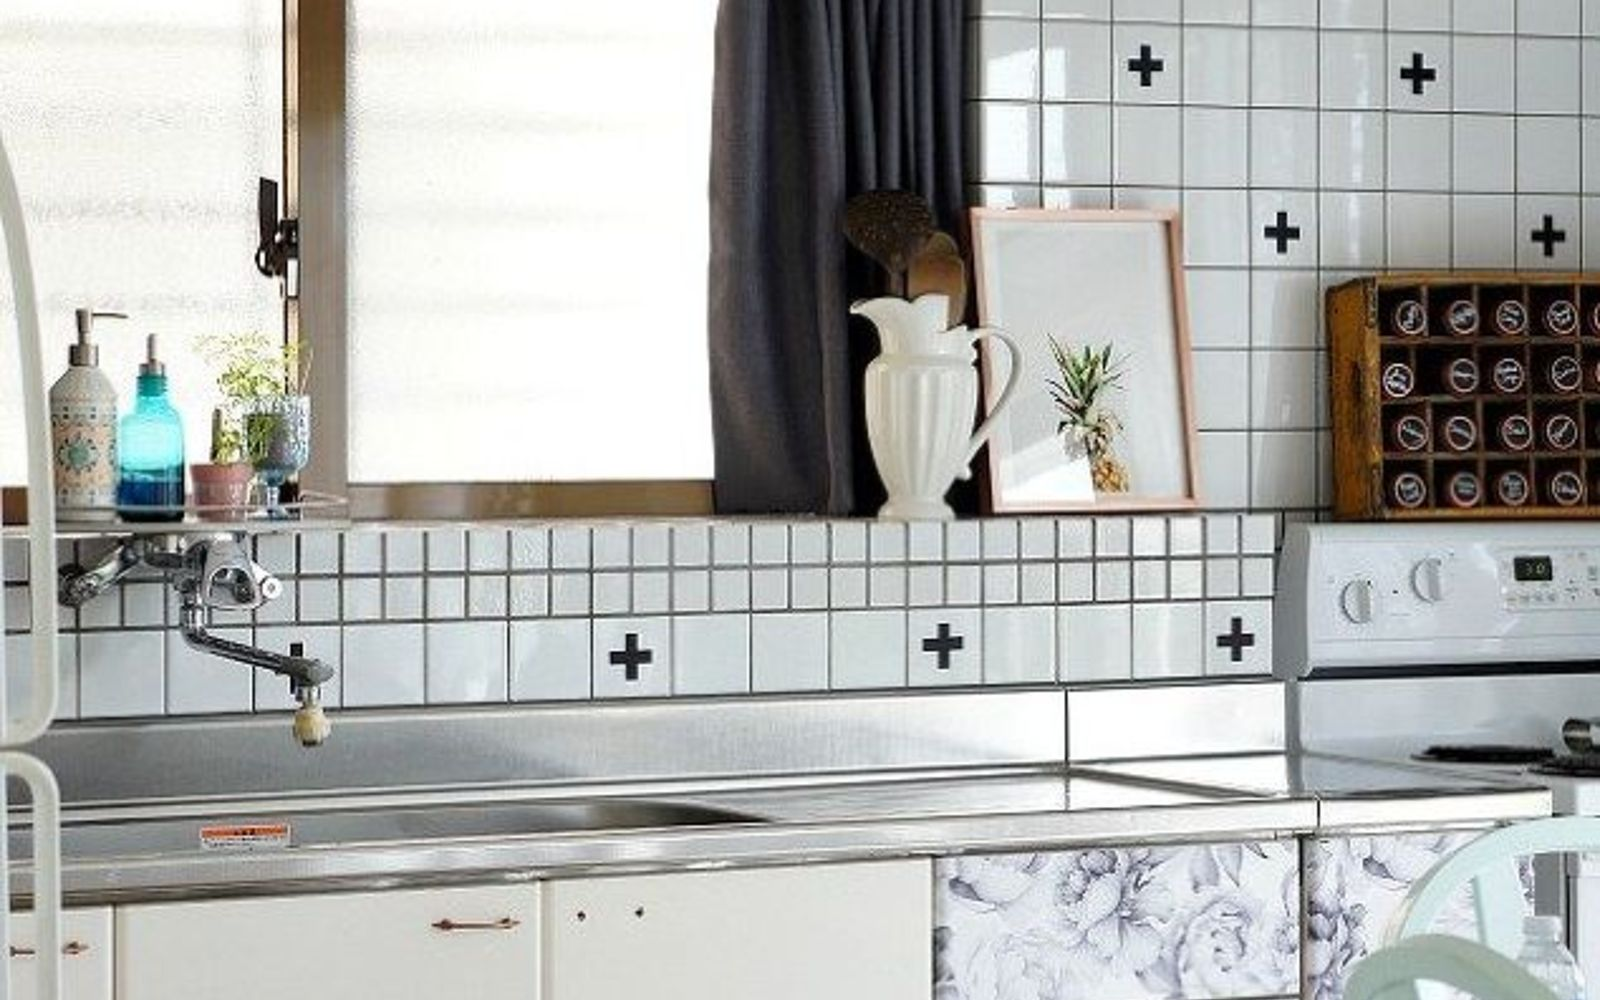 s 13 kitchen paint colors people are pinning like crazy, kitchen design, paint colors, Choose a print instead of a color